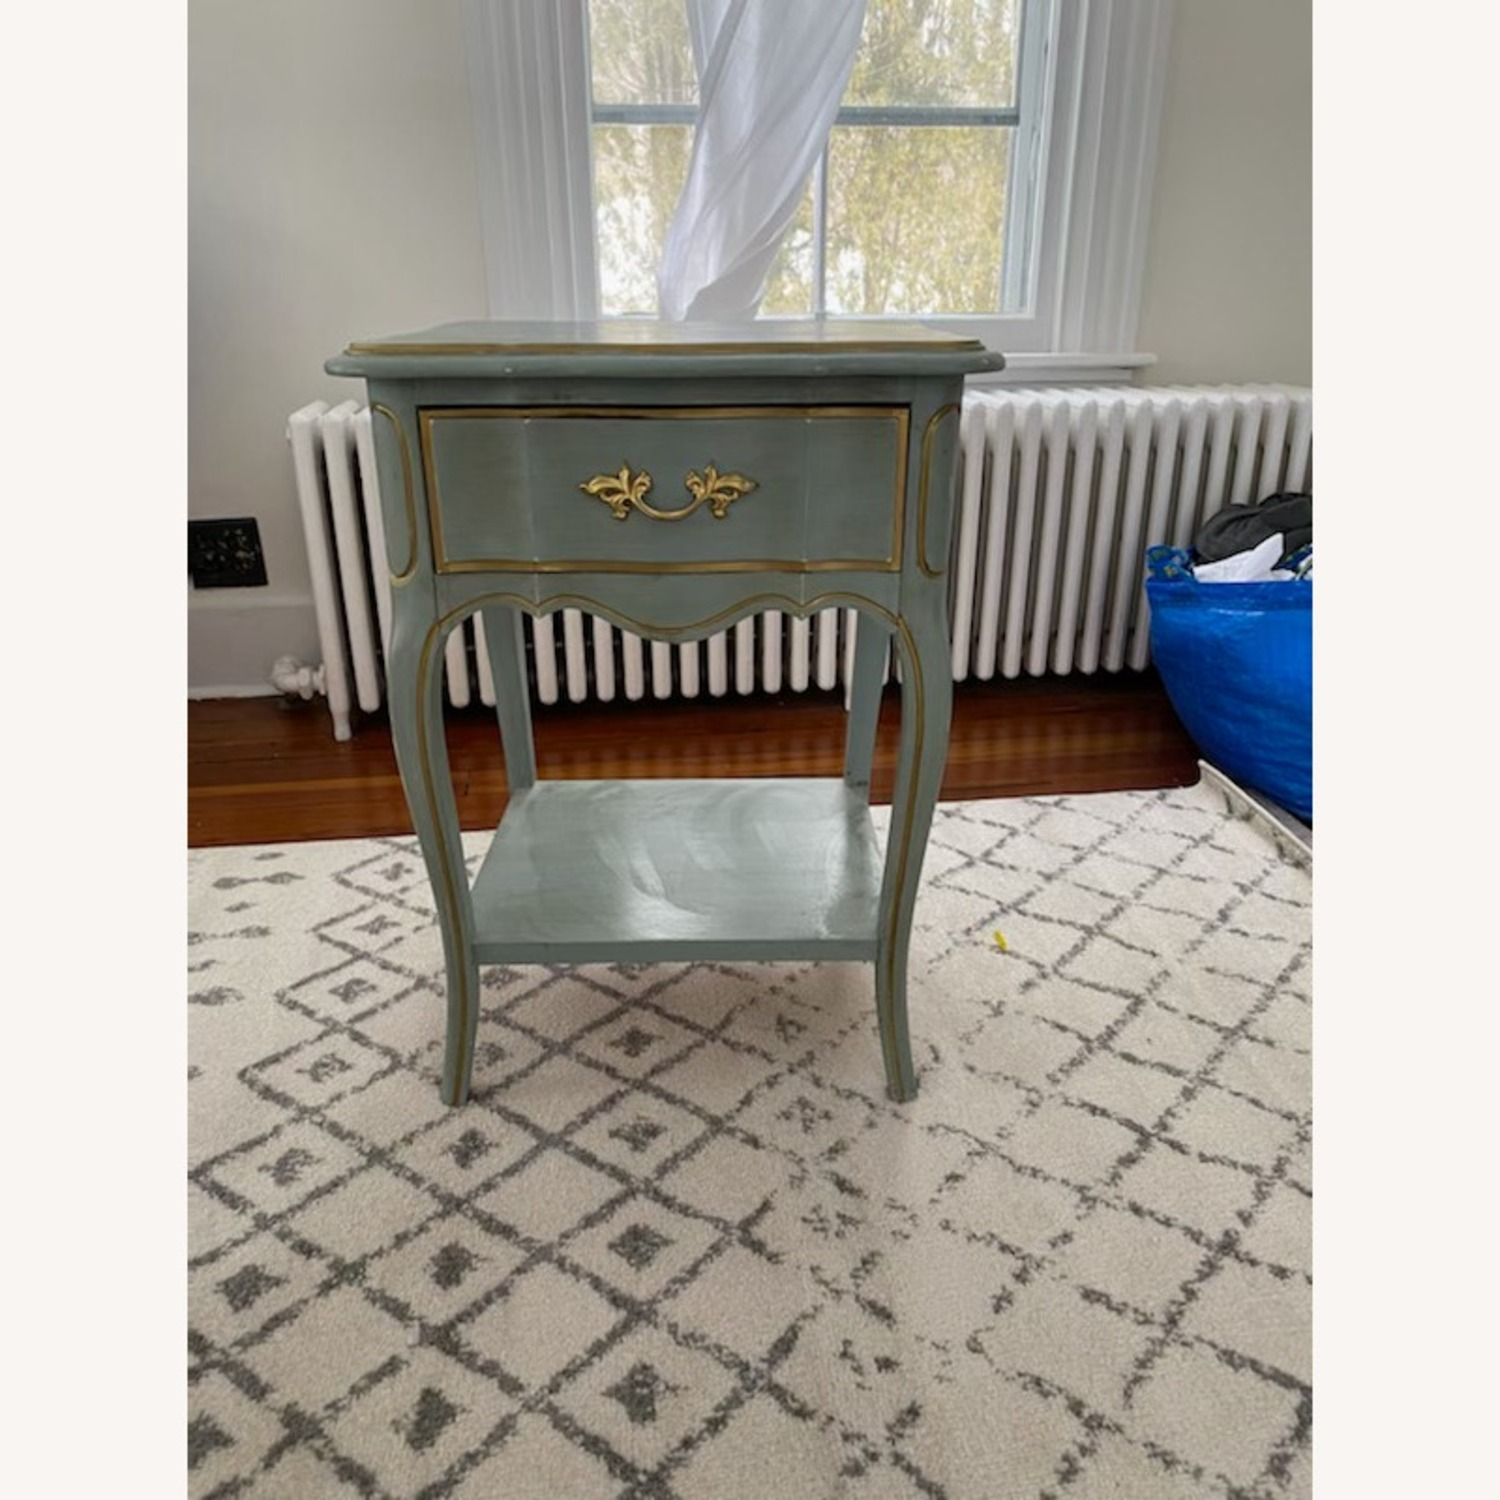 Vintage Blue Nightstand/table with Gold Accents - image-2